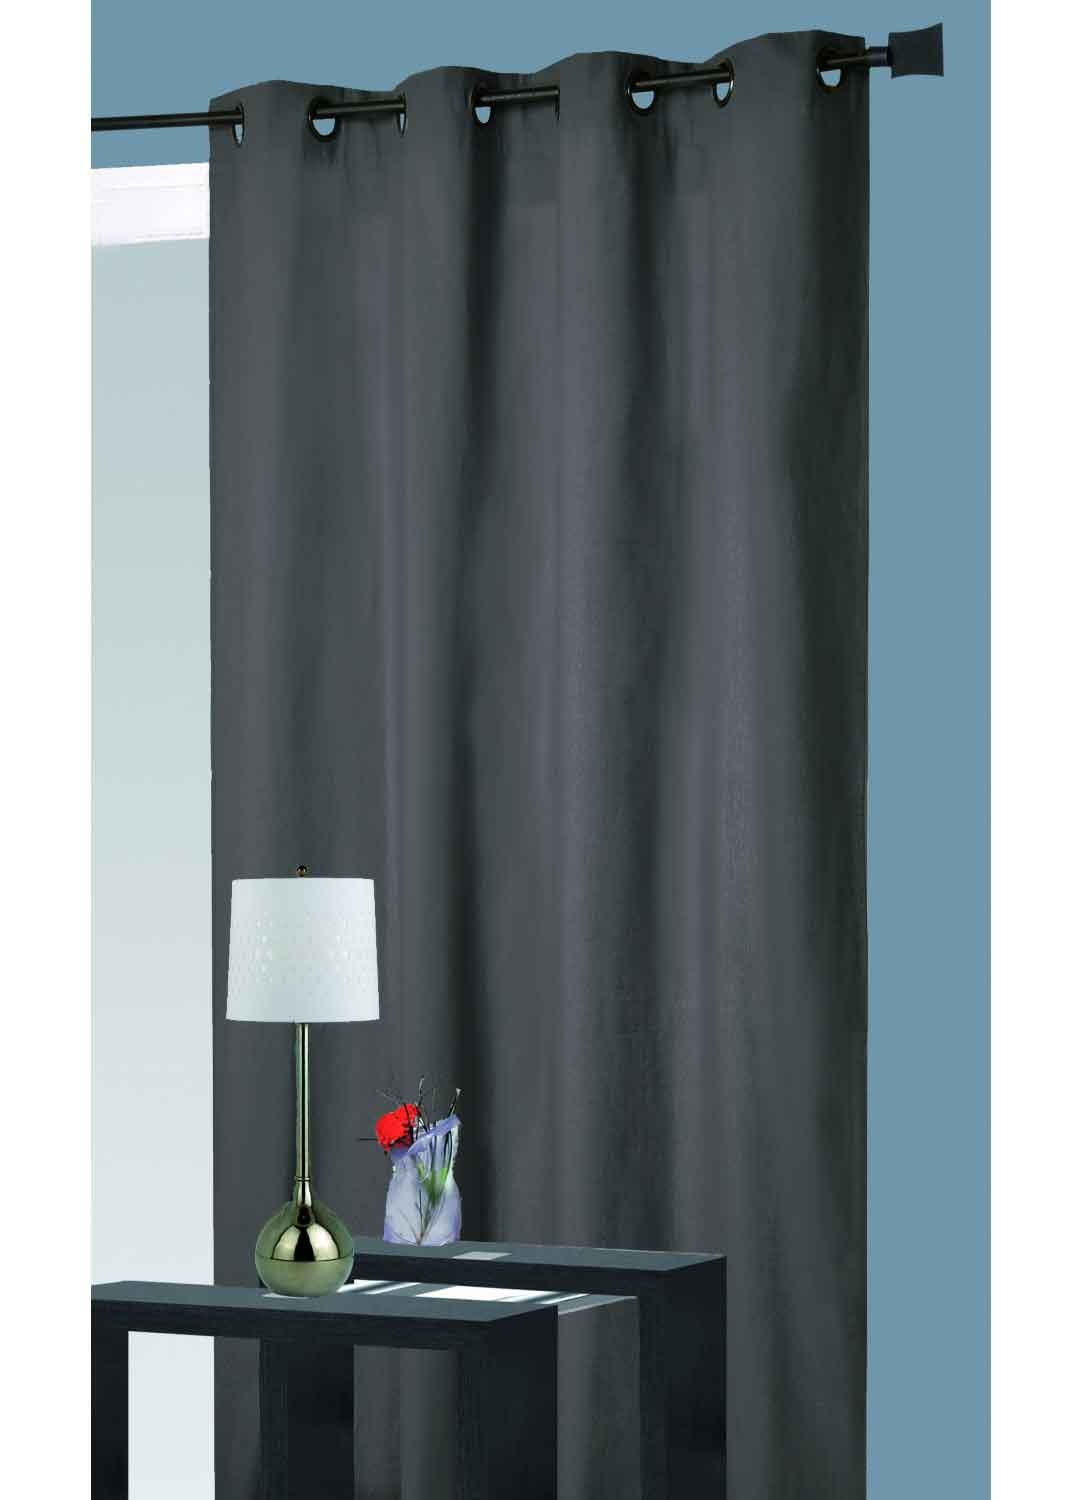 rideau isolant thermique anthracite p trole perle noir rouge taupe lin. Black Bedroom Furniture Sets. Home Design Ideas